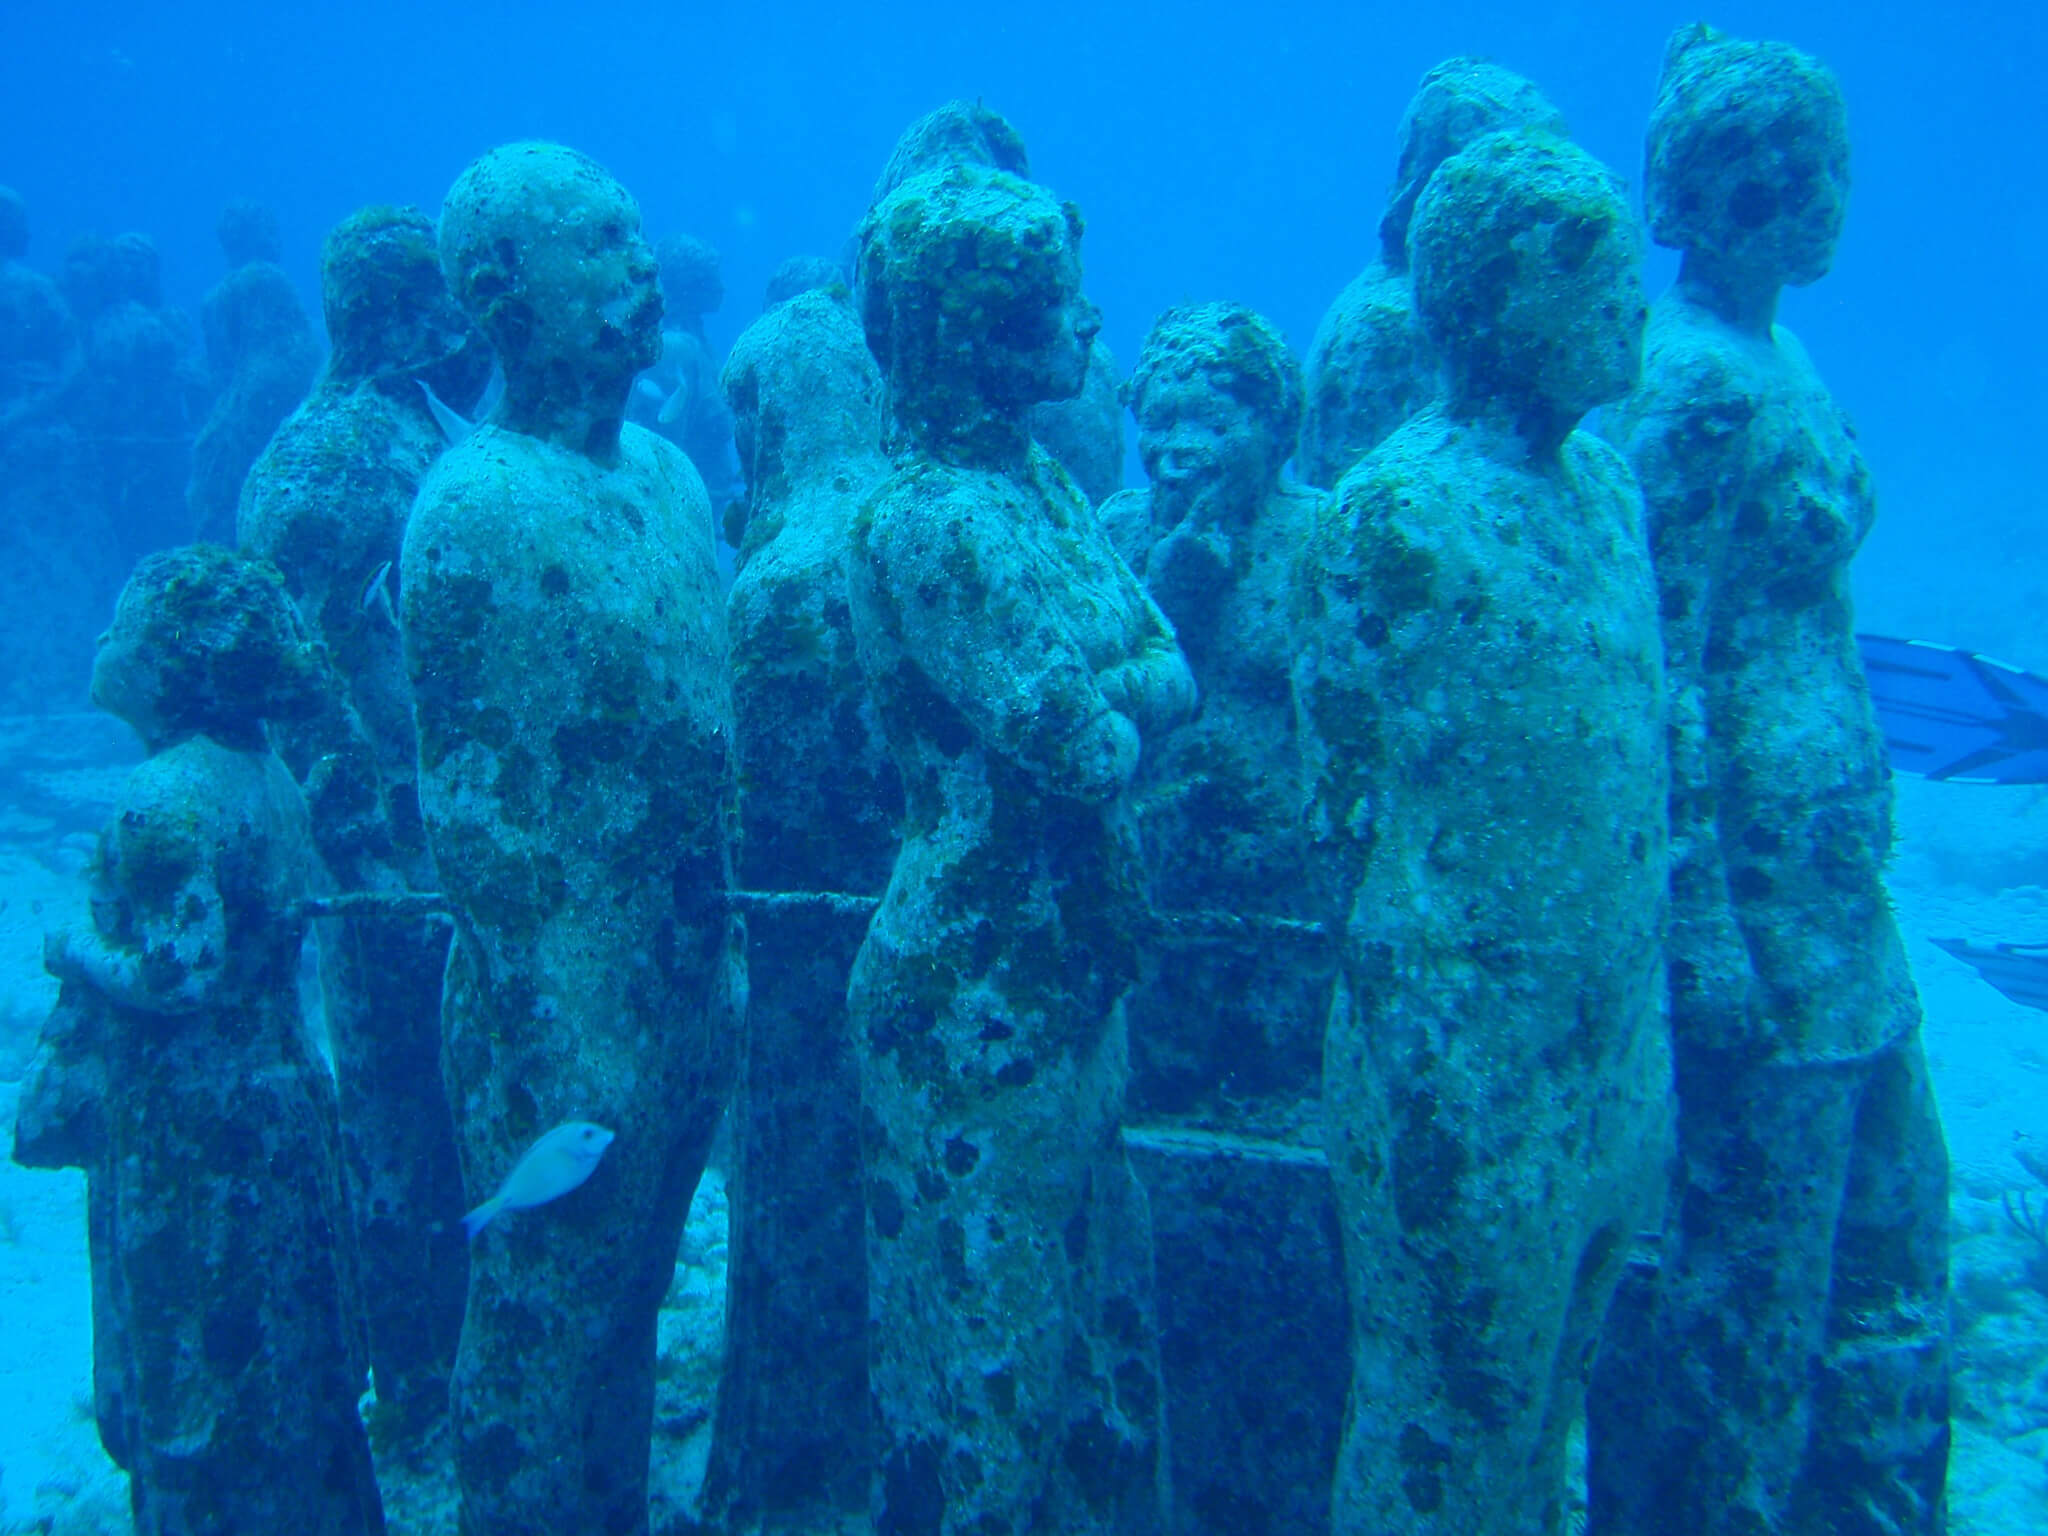 Underwater sculptures in Cancun